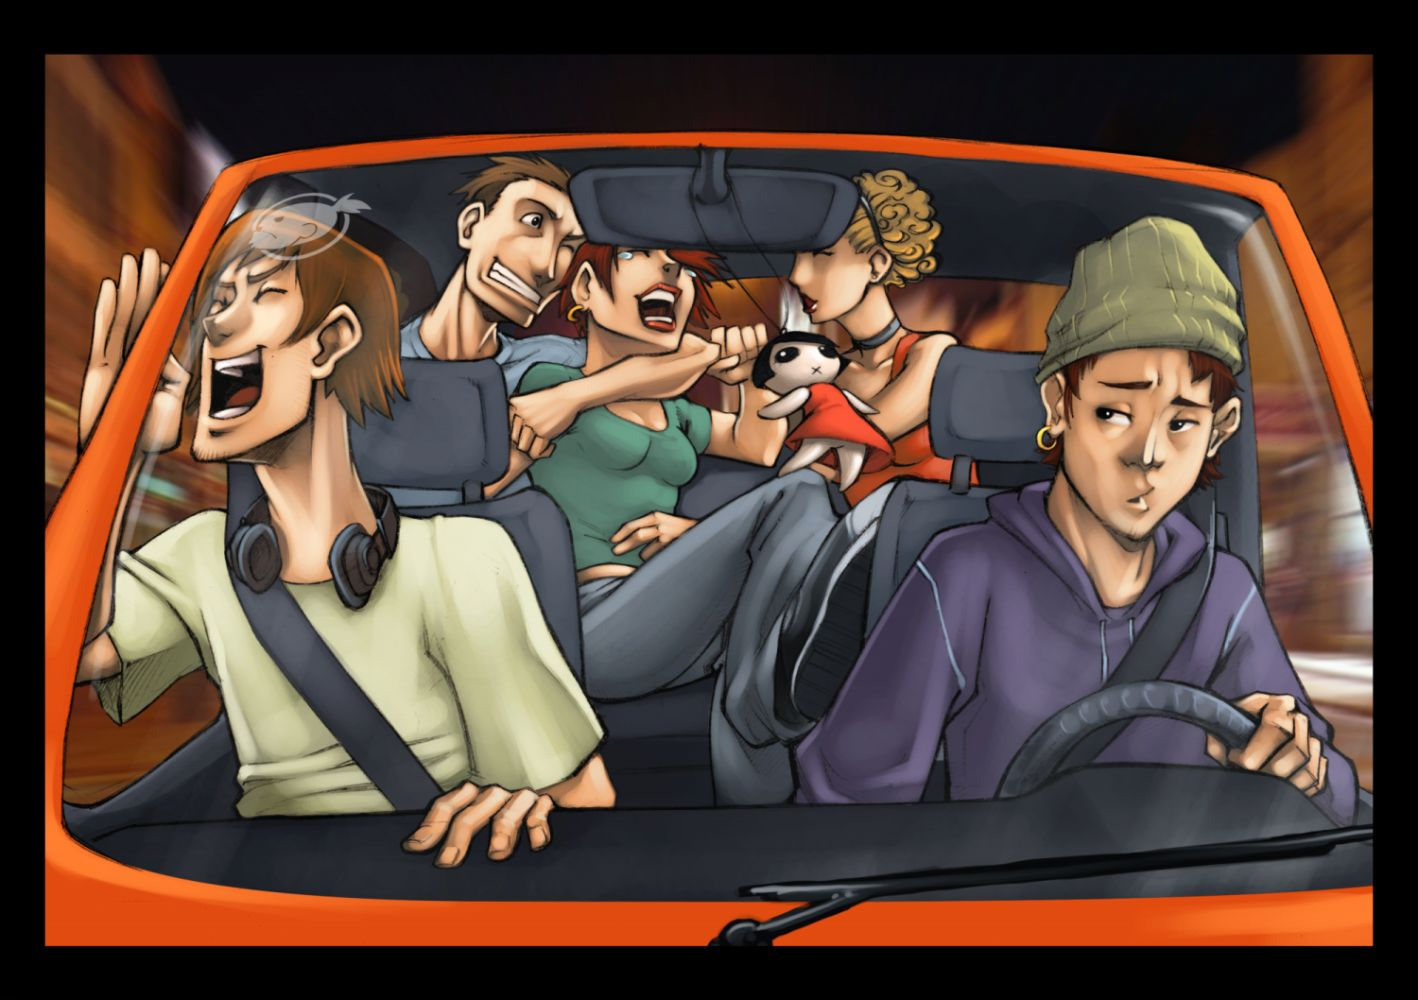 Car party by estivador